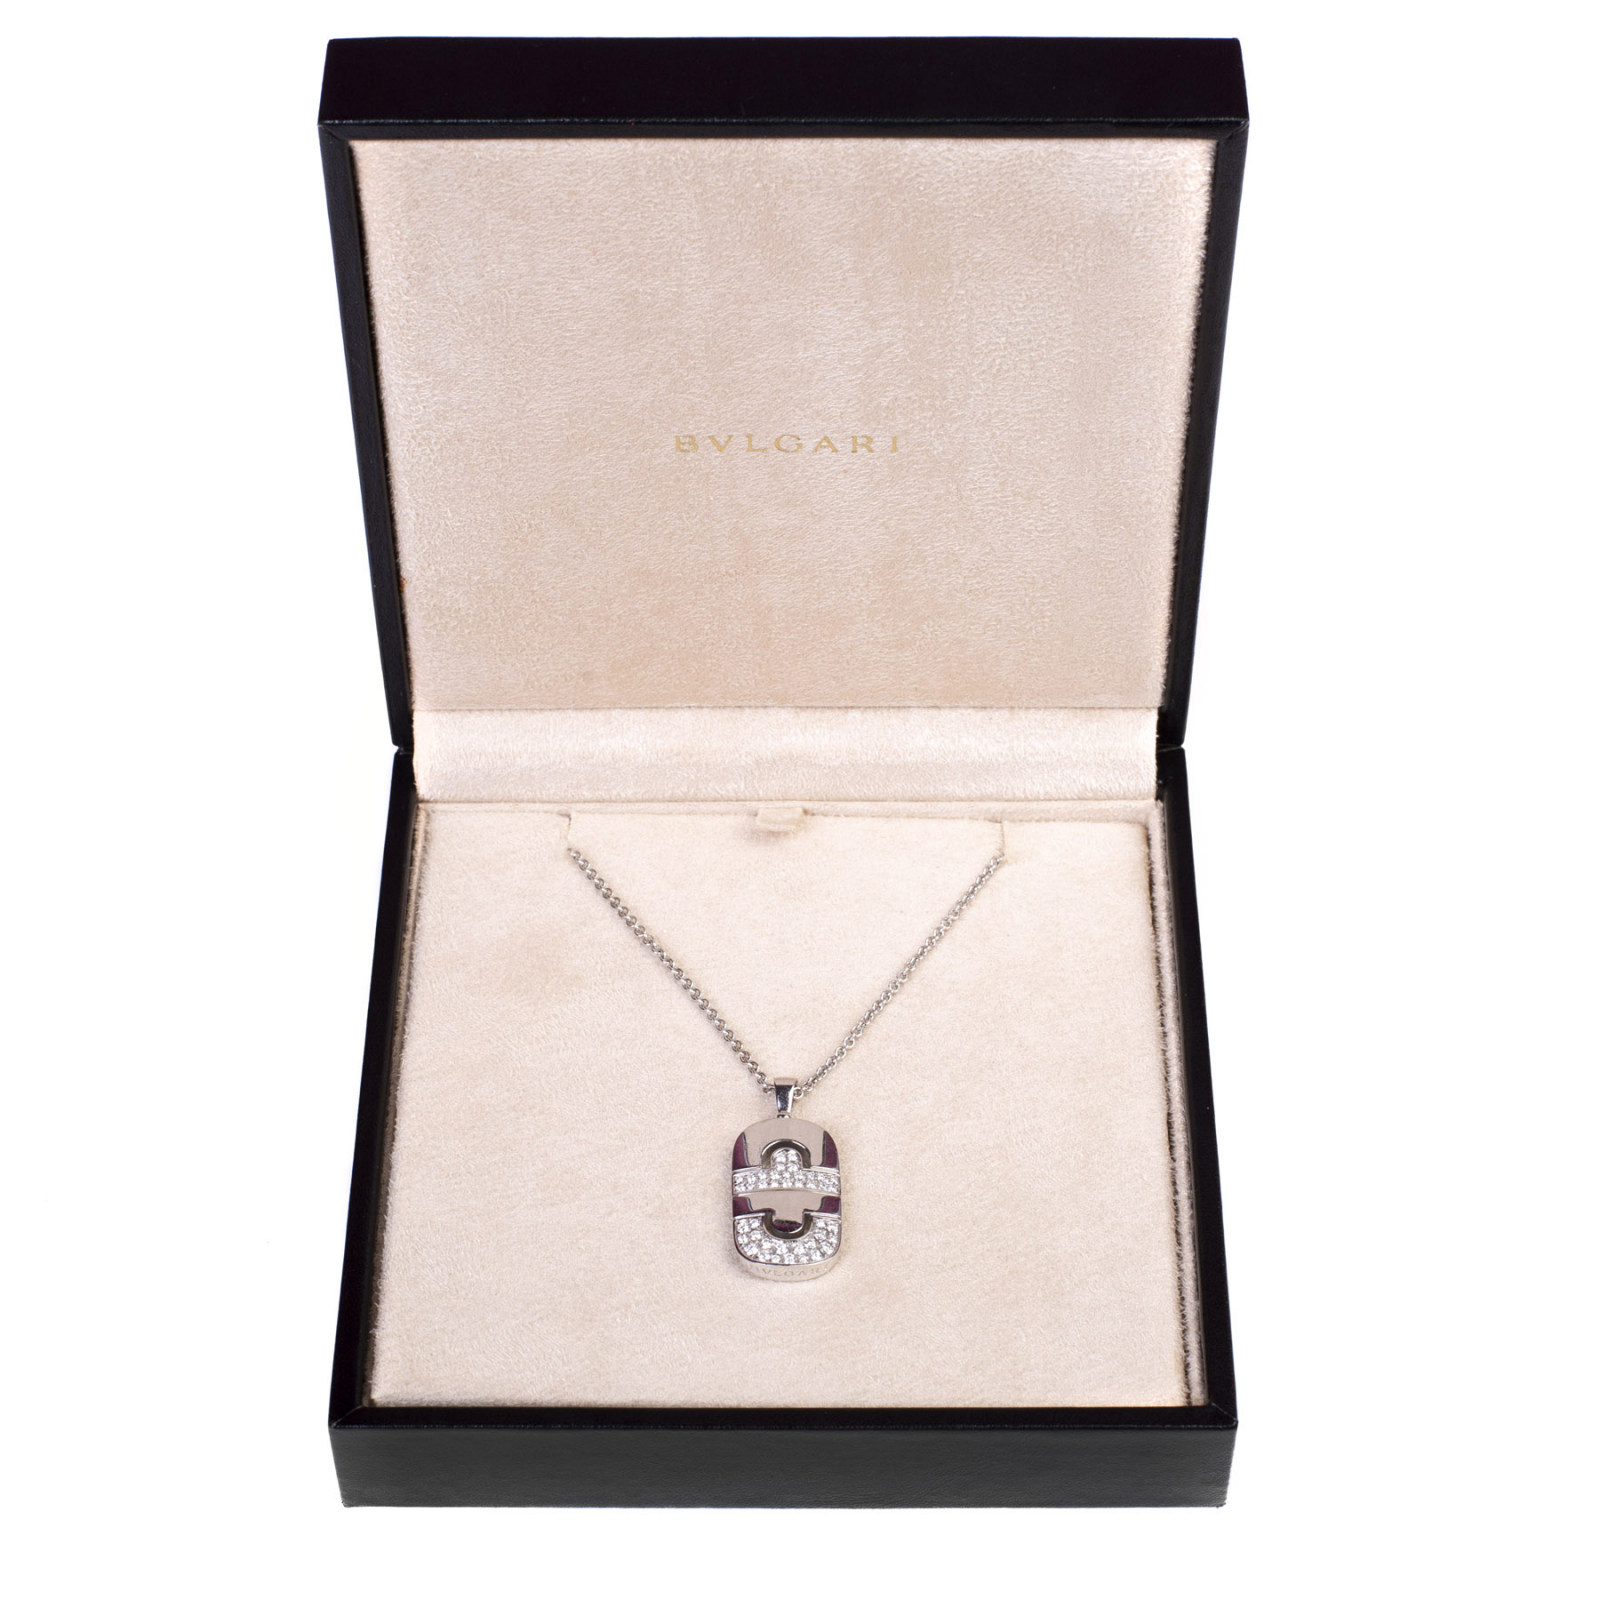 Bulgari Parentesi White Gold and Diamond Pendant Necklace